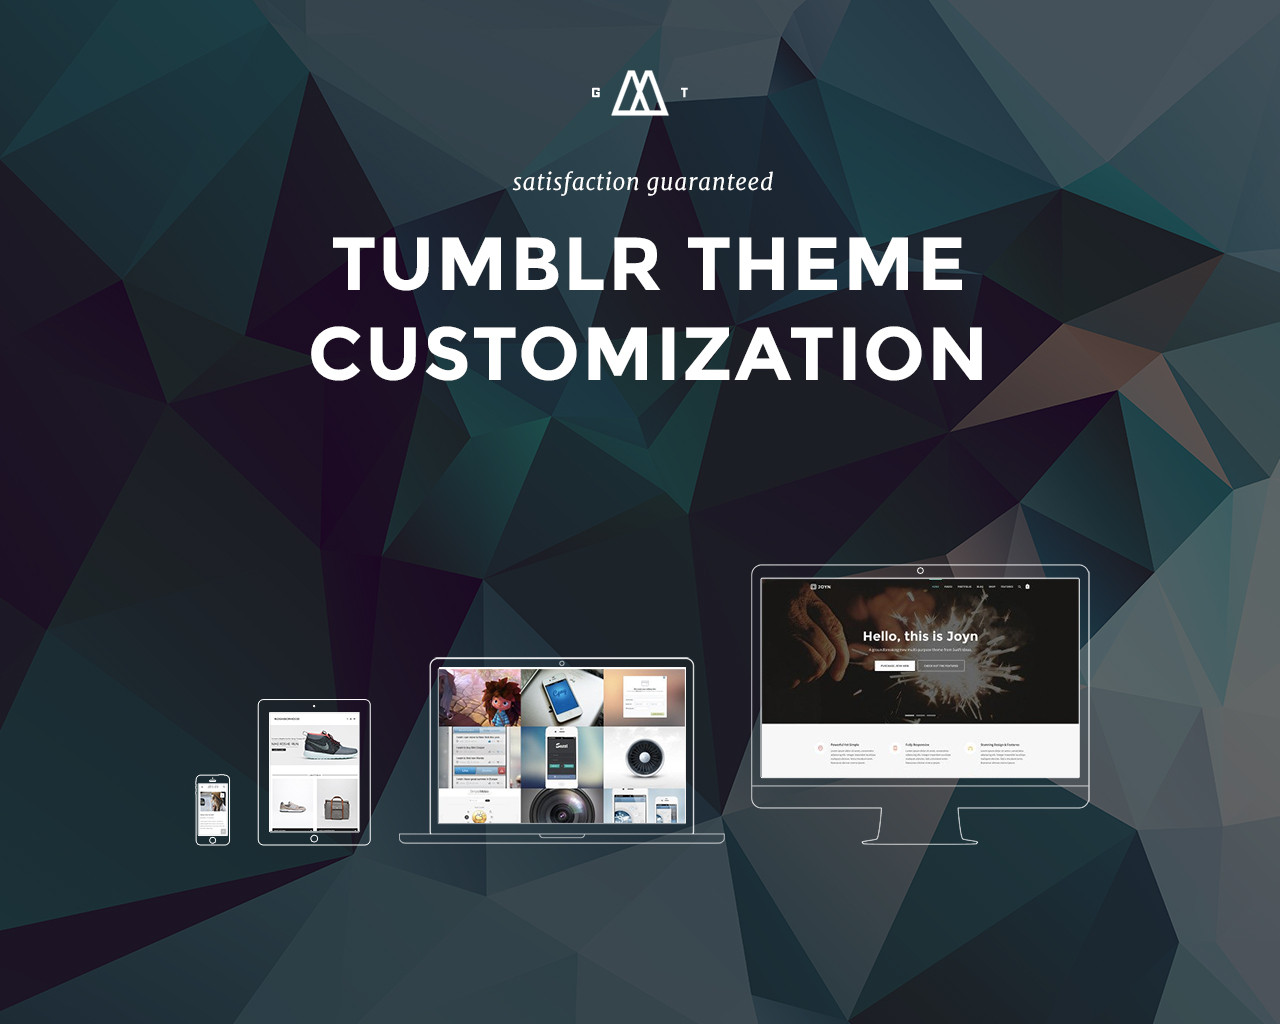 Tumblr Theme Customization by getThemed - 83492